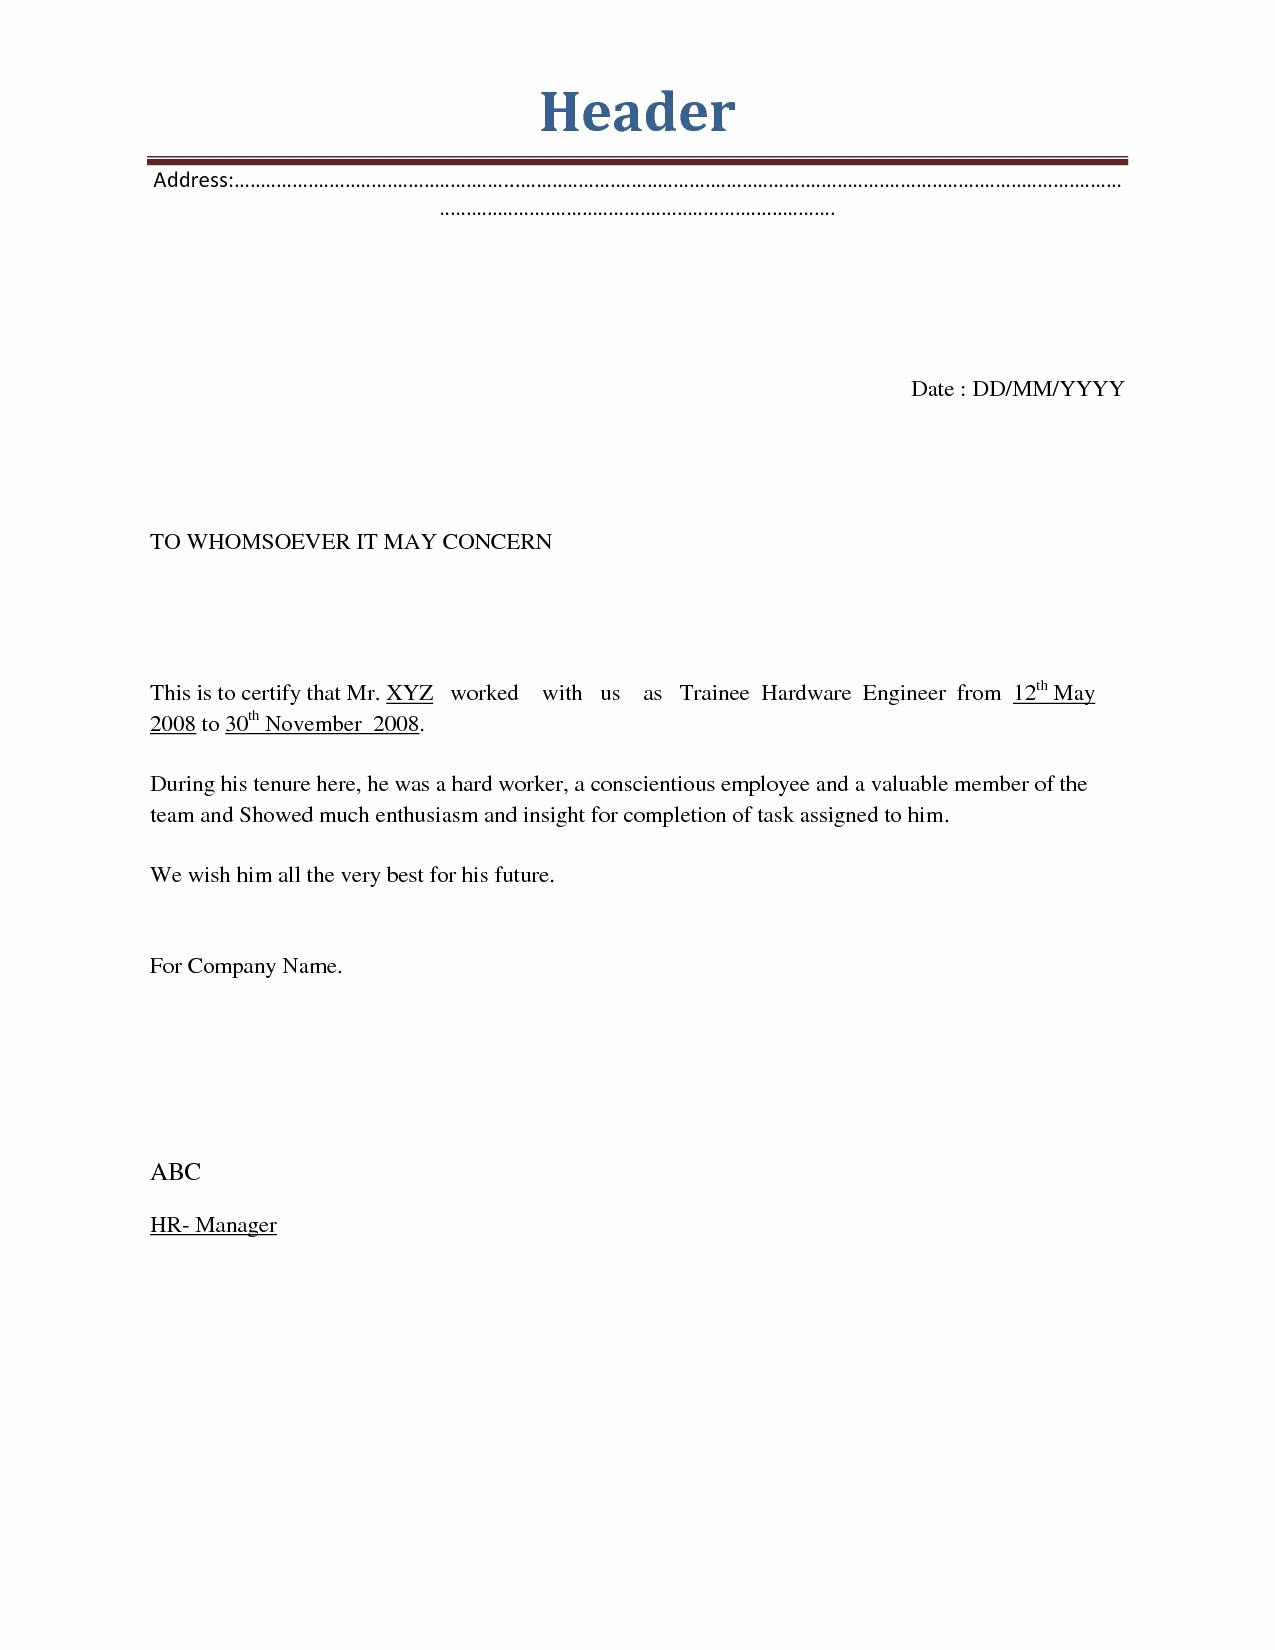 Employment Separation Letter Template